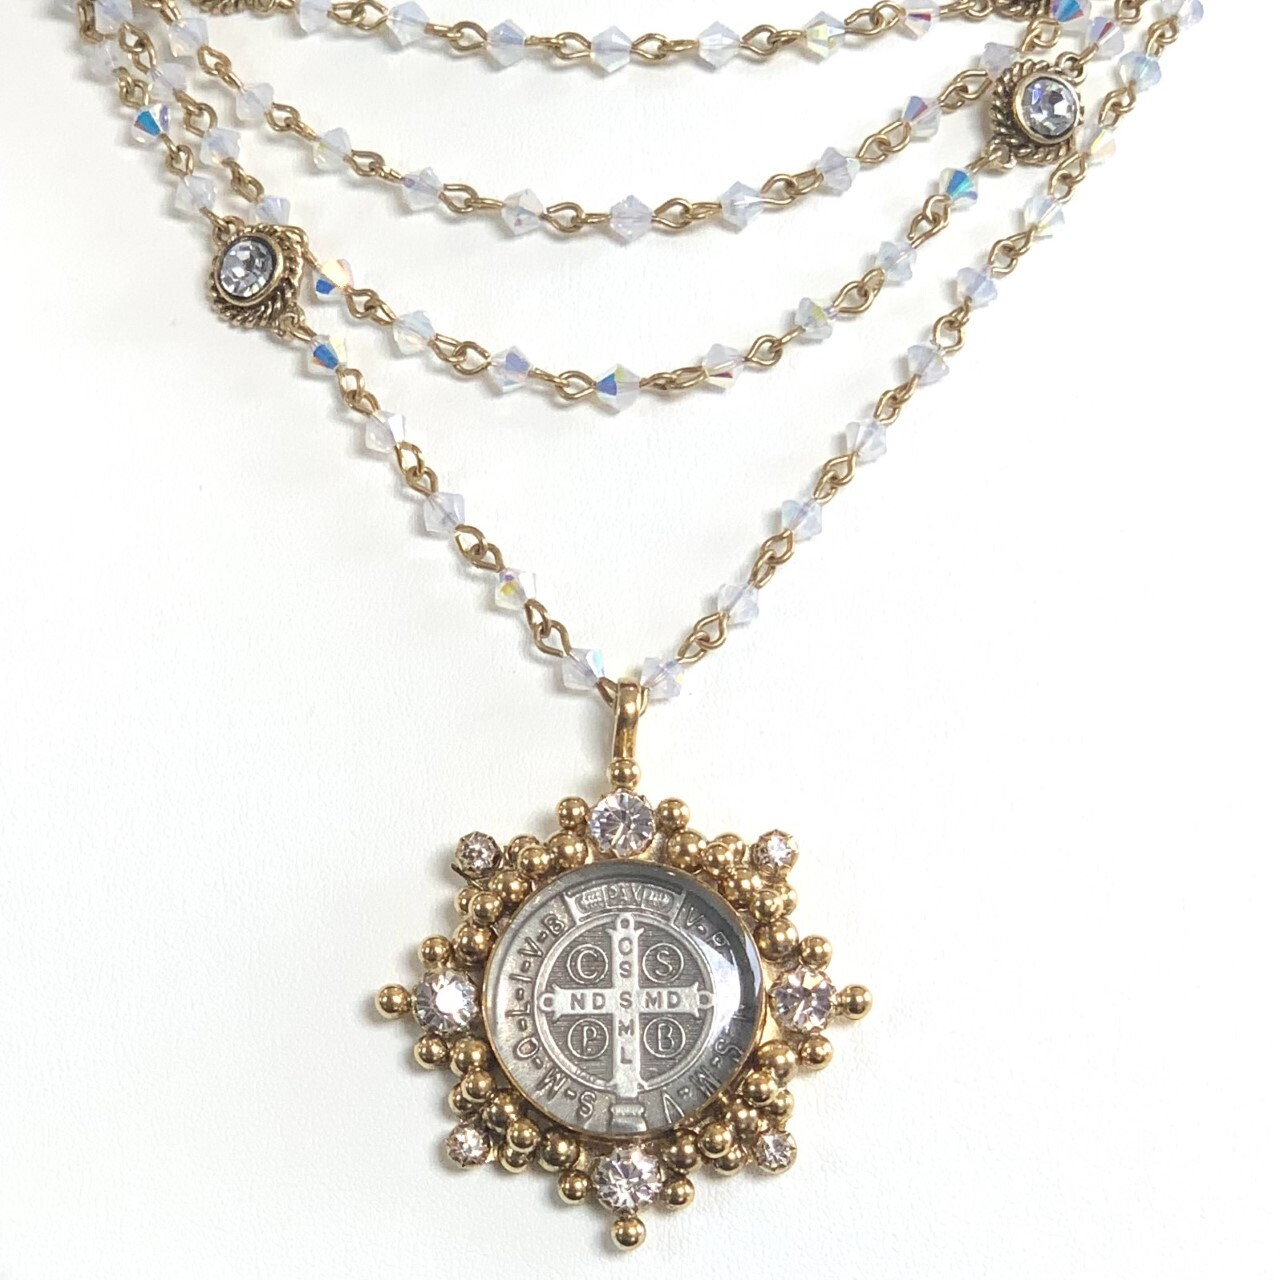 VSA Magdalena Necklace in Virgin White Ombre (Gold)